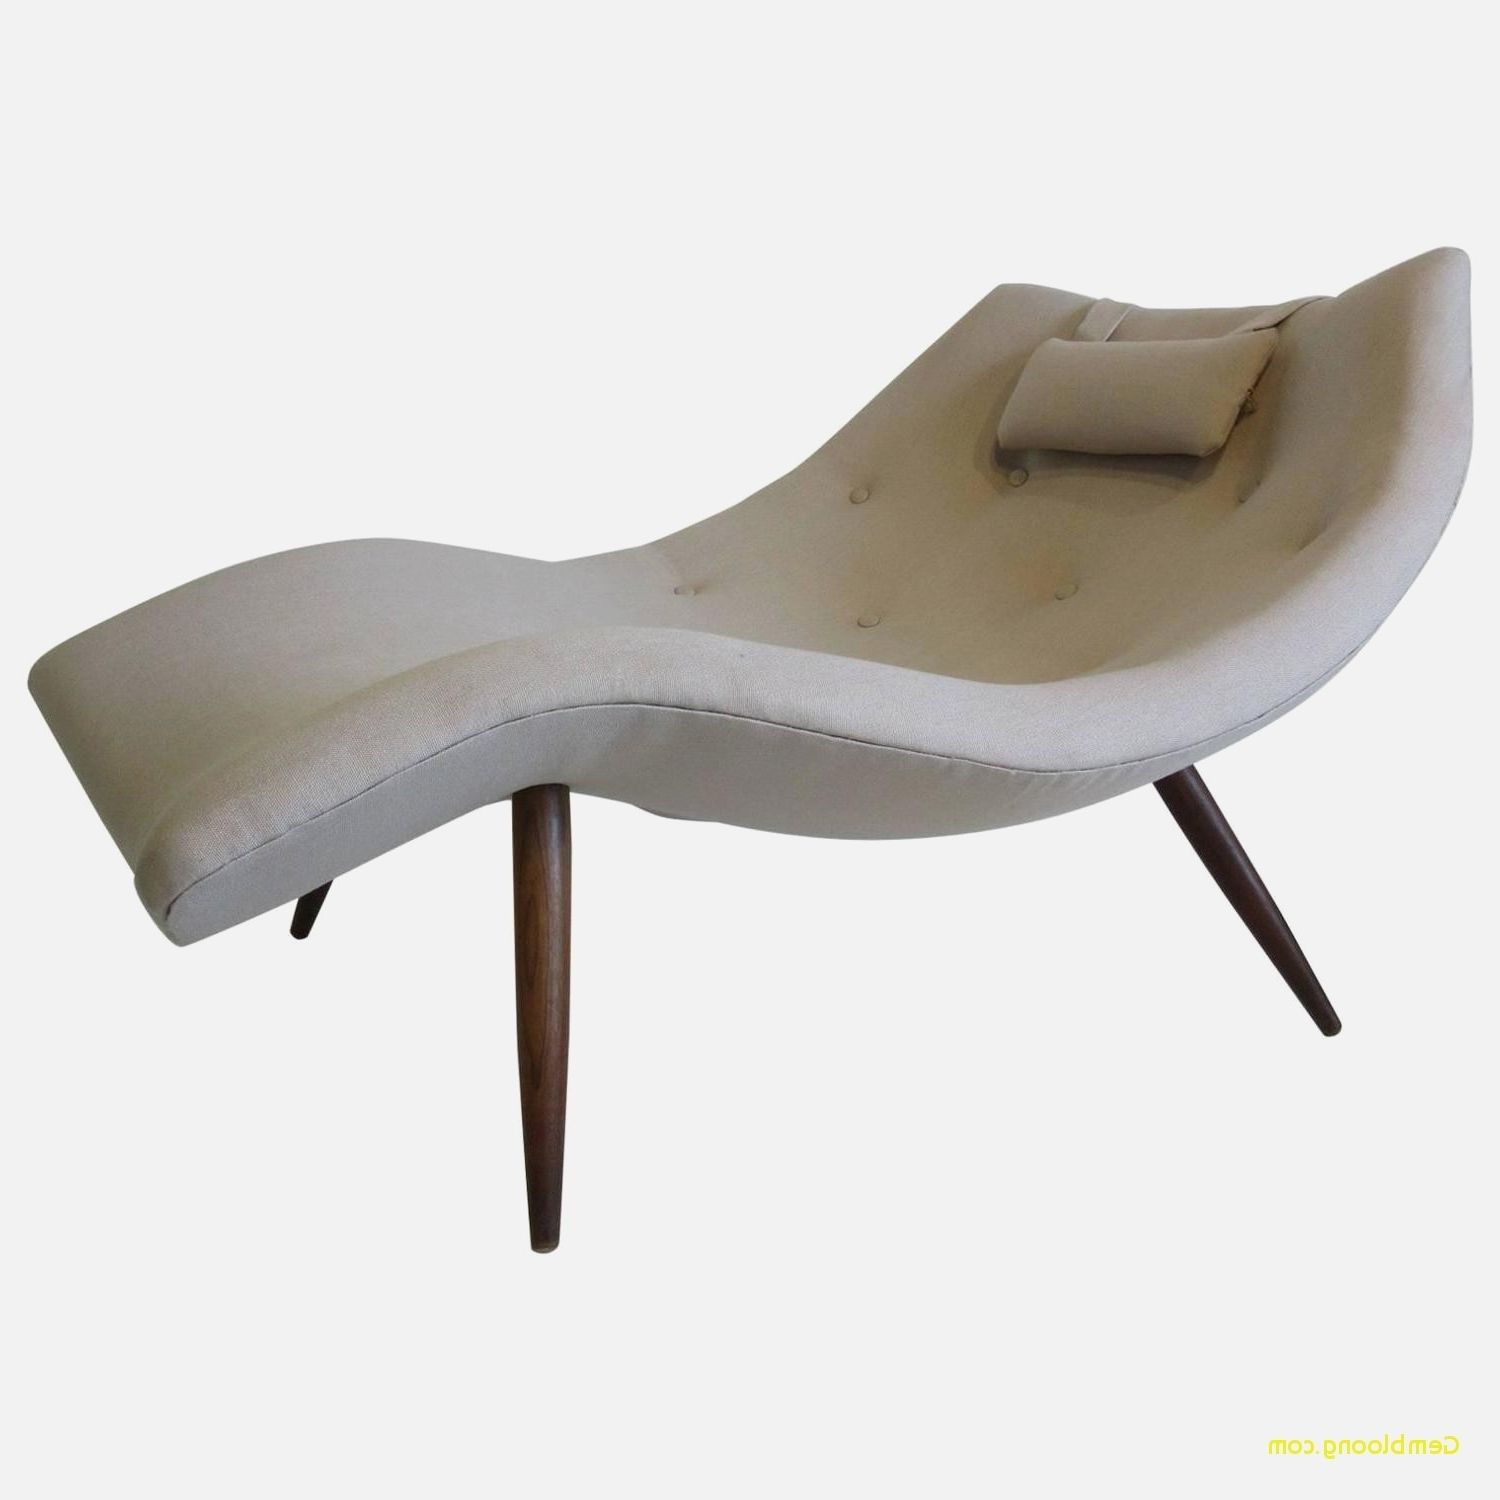 2017 Curved Chaise Lounge Chair Unique Curved Chaise Lounge Chair Pertaining To Curved Chaise Lounges (View 3 of 15)